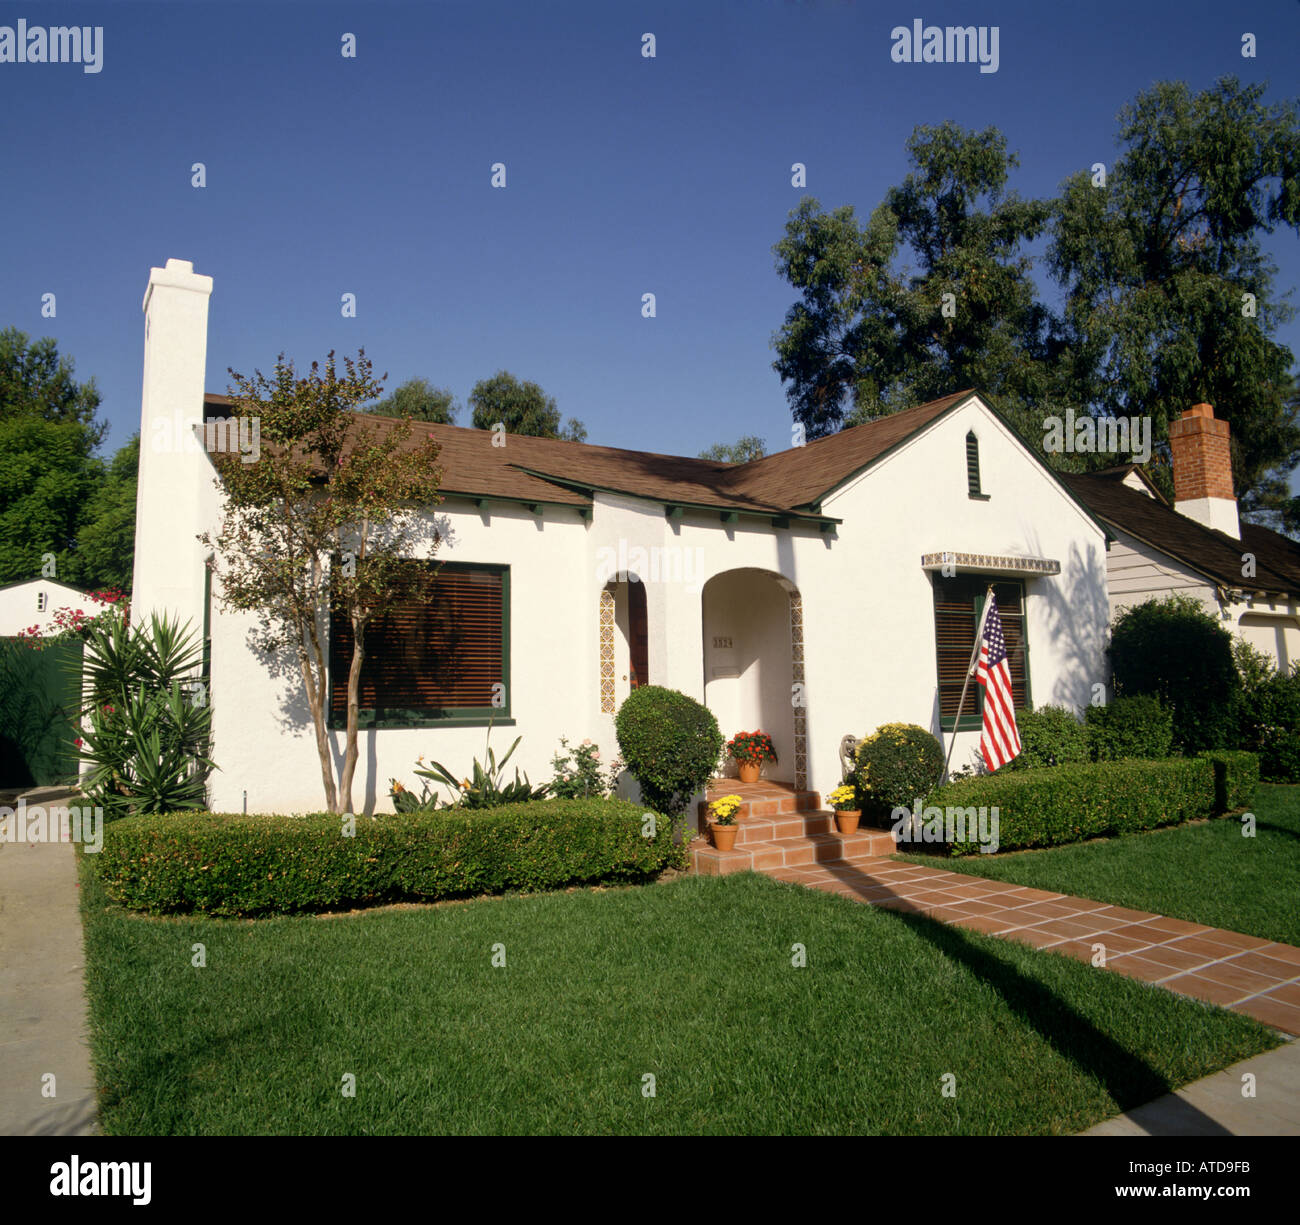 White Stucco Homes single story white stucco house with a red tile roof palm tree and